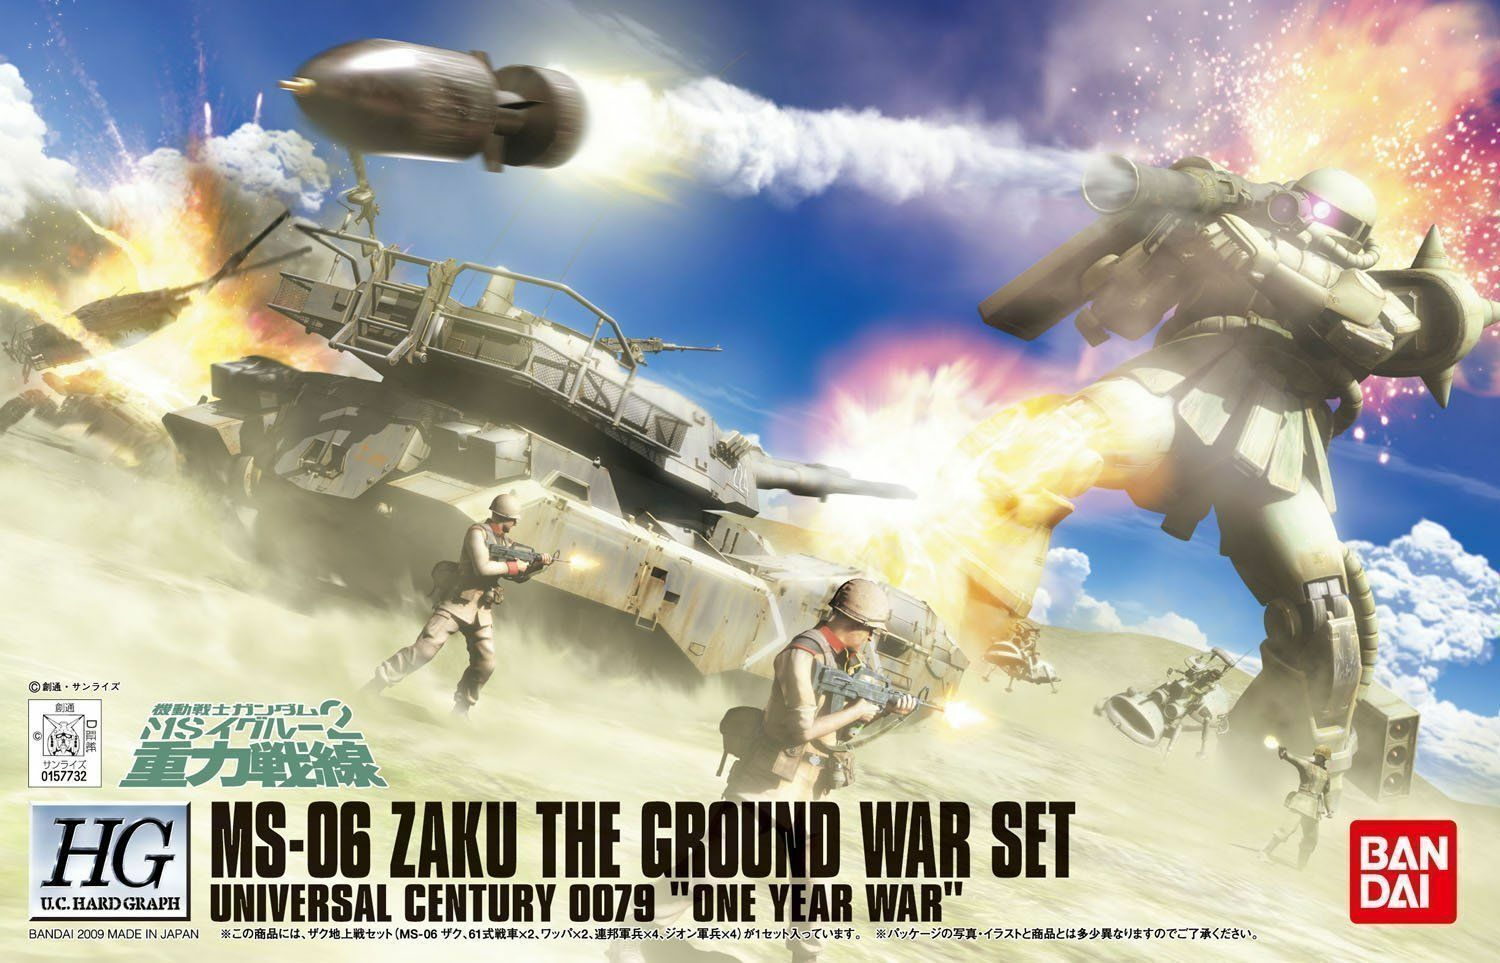 BANDAI GUNPLA MS-06 ZAKU THE GROUND WAR SET 1-144 High Grade - Universal Century